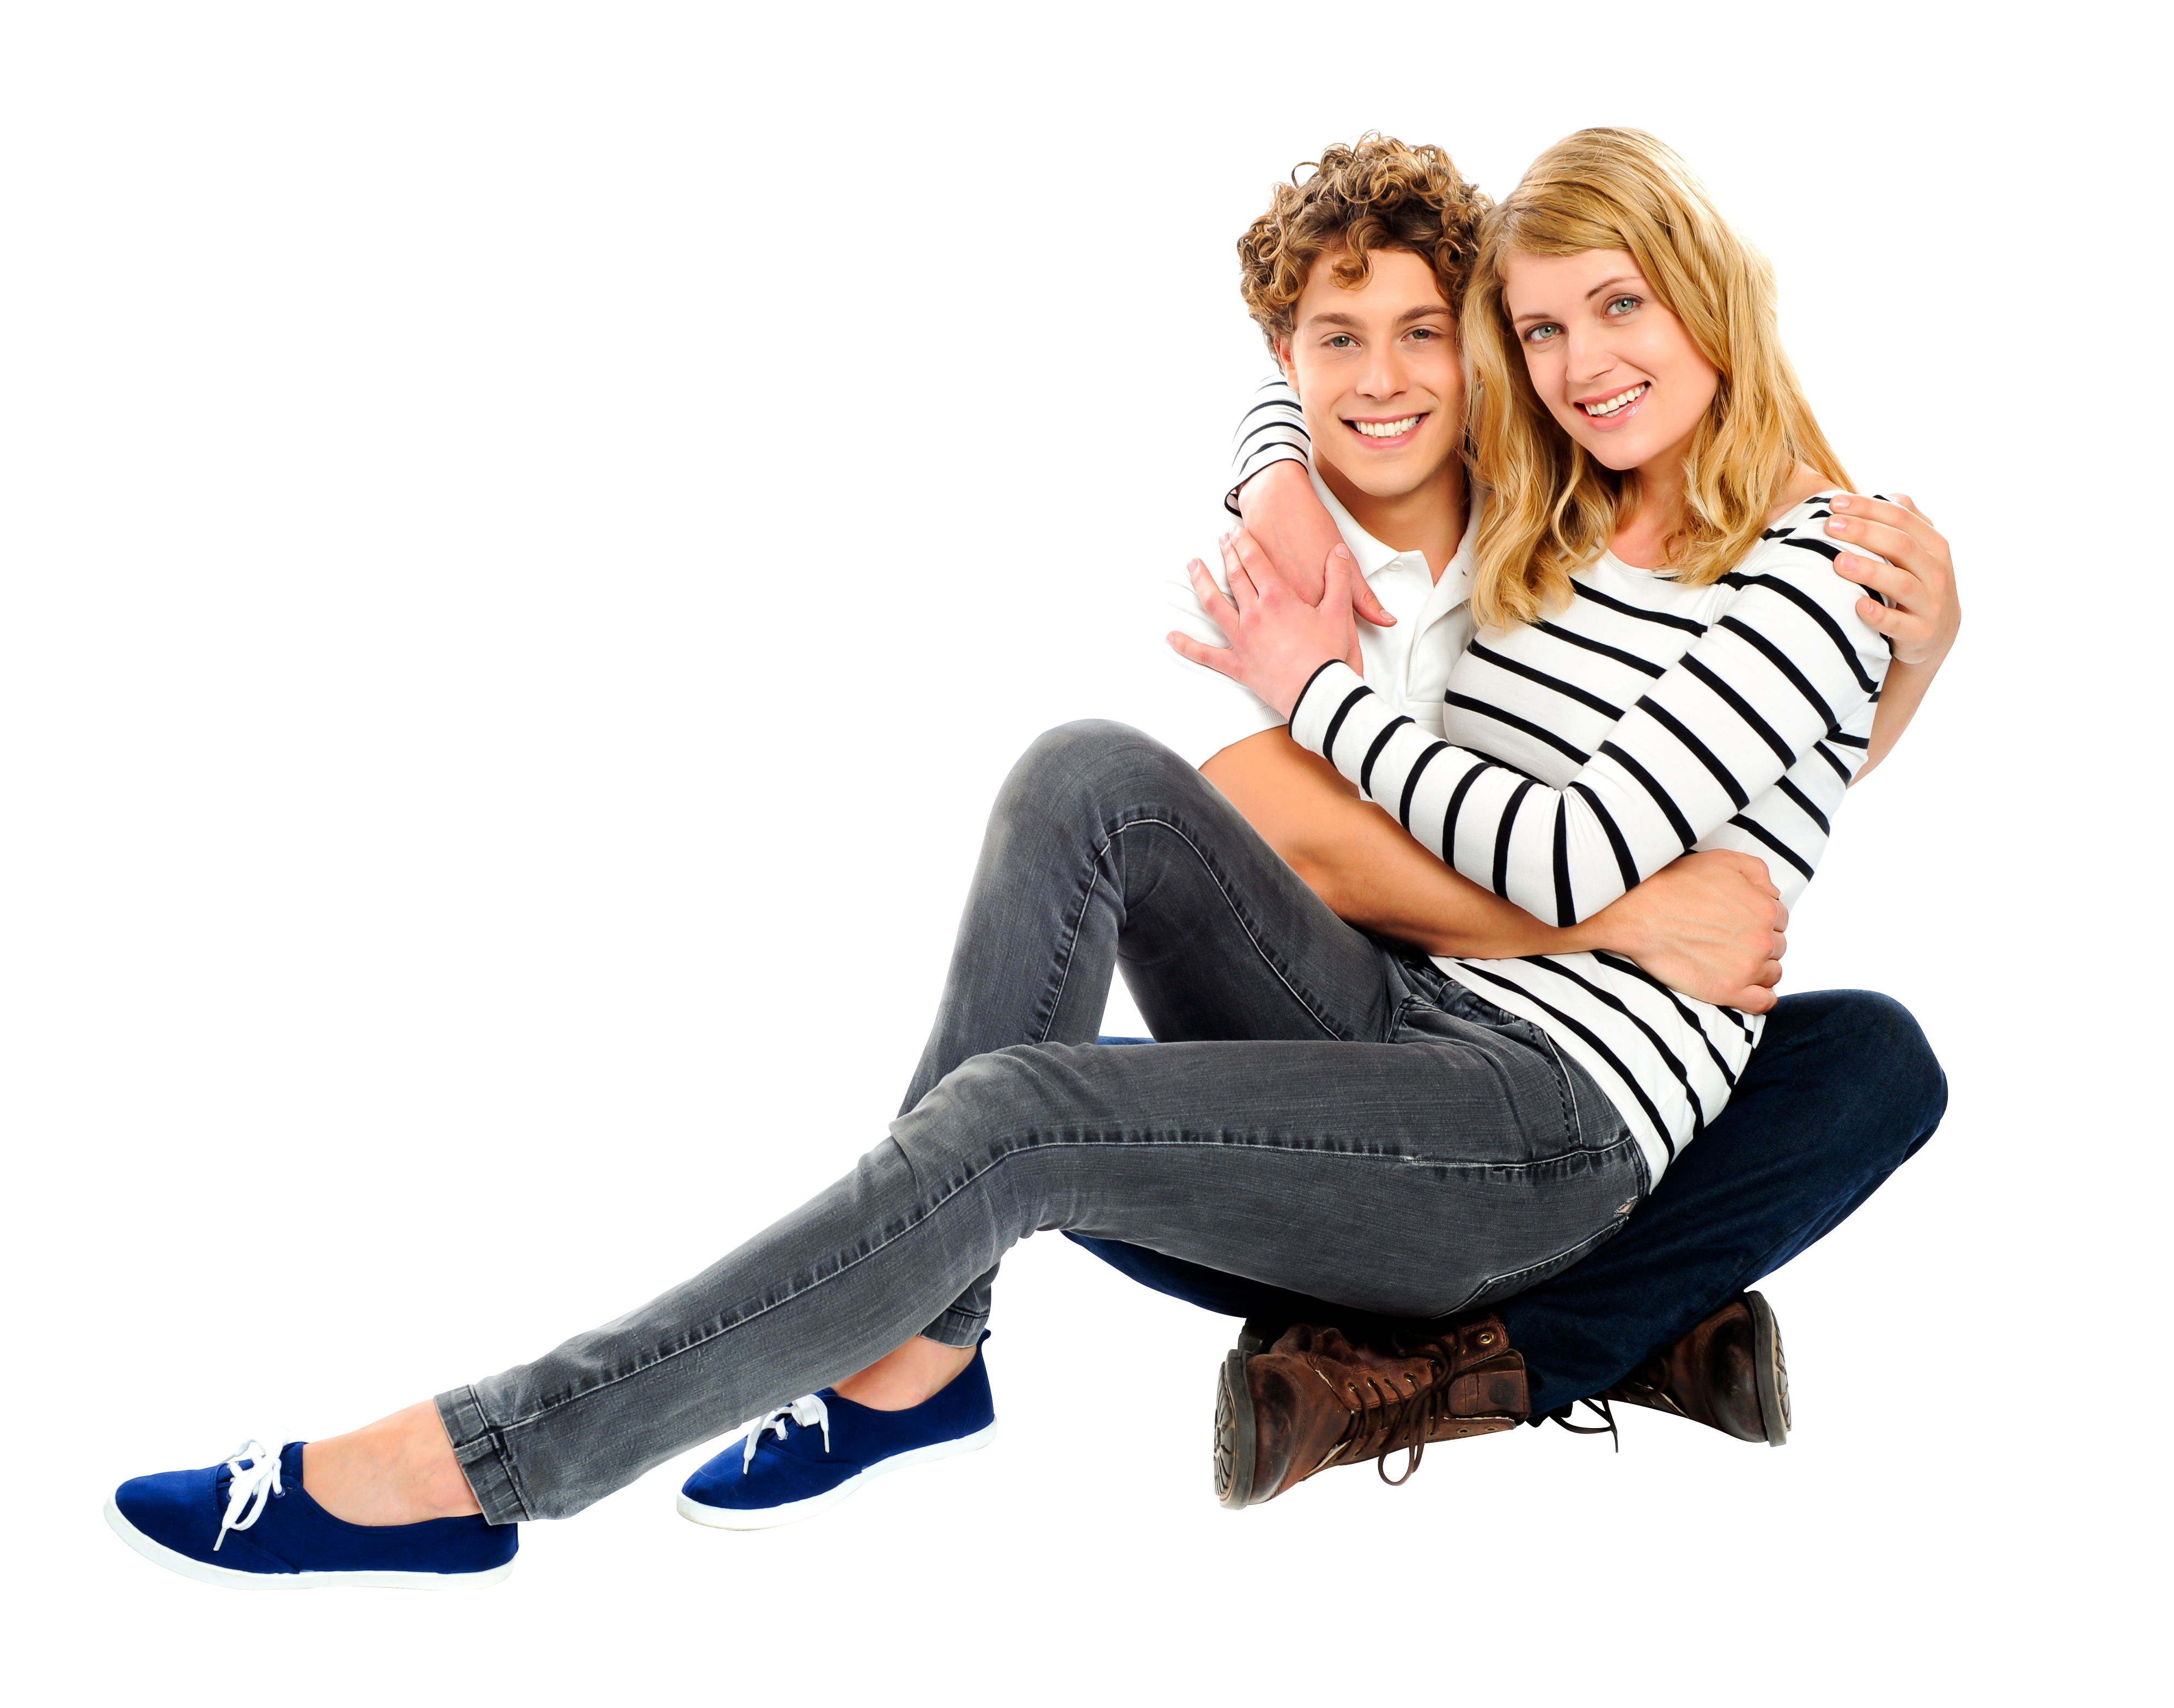 Couple In Love Png - Love Couple PNG Image - PurePNG   Free transparent CC0 PNG Image ...